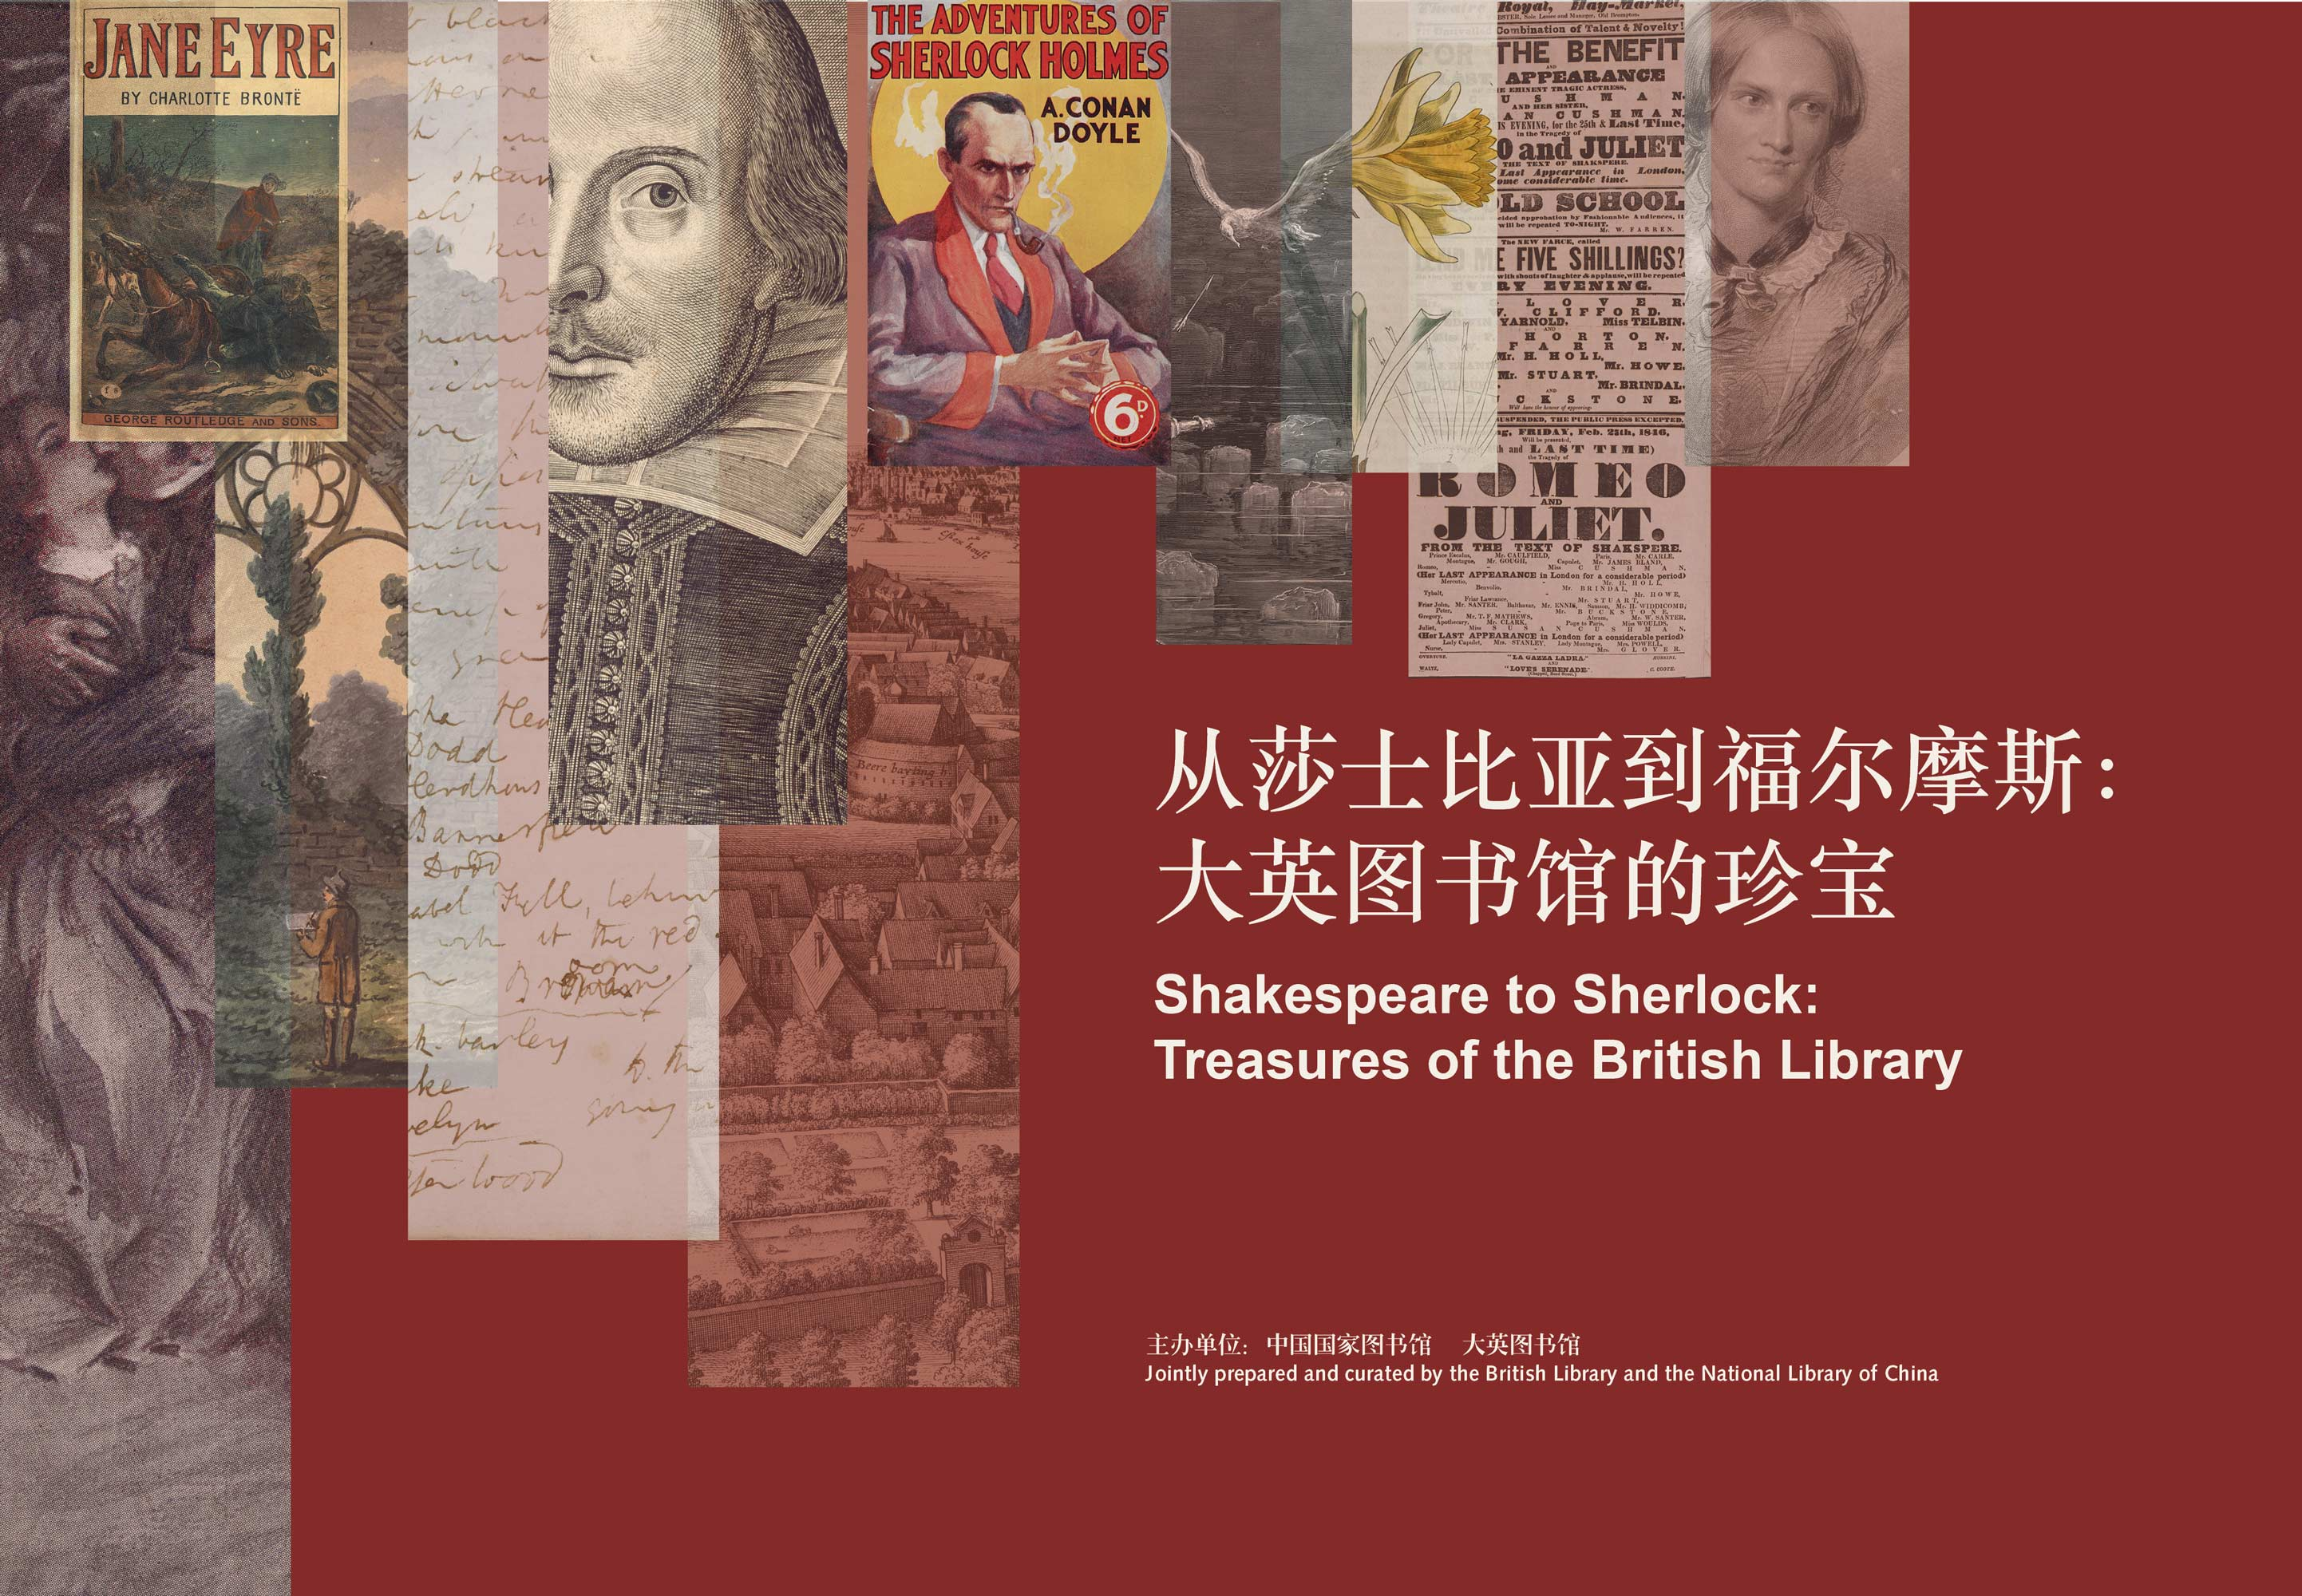 Shakespeare to Sherlock: Treasures of the British Library exhibition main visuals